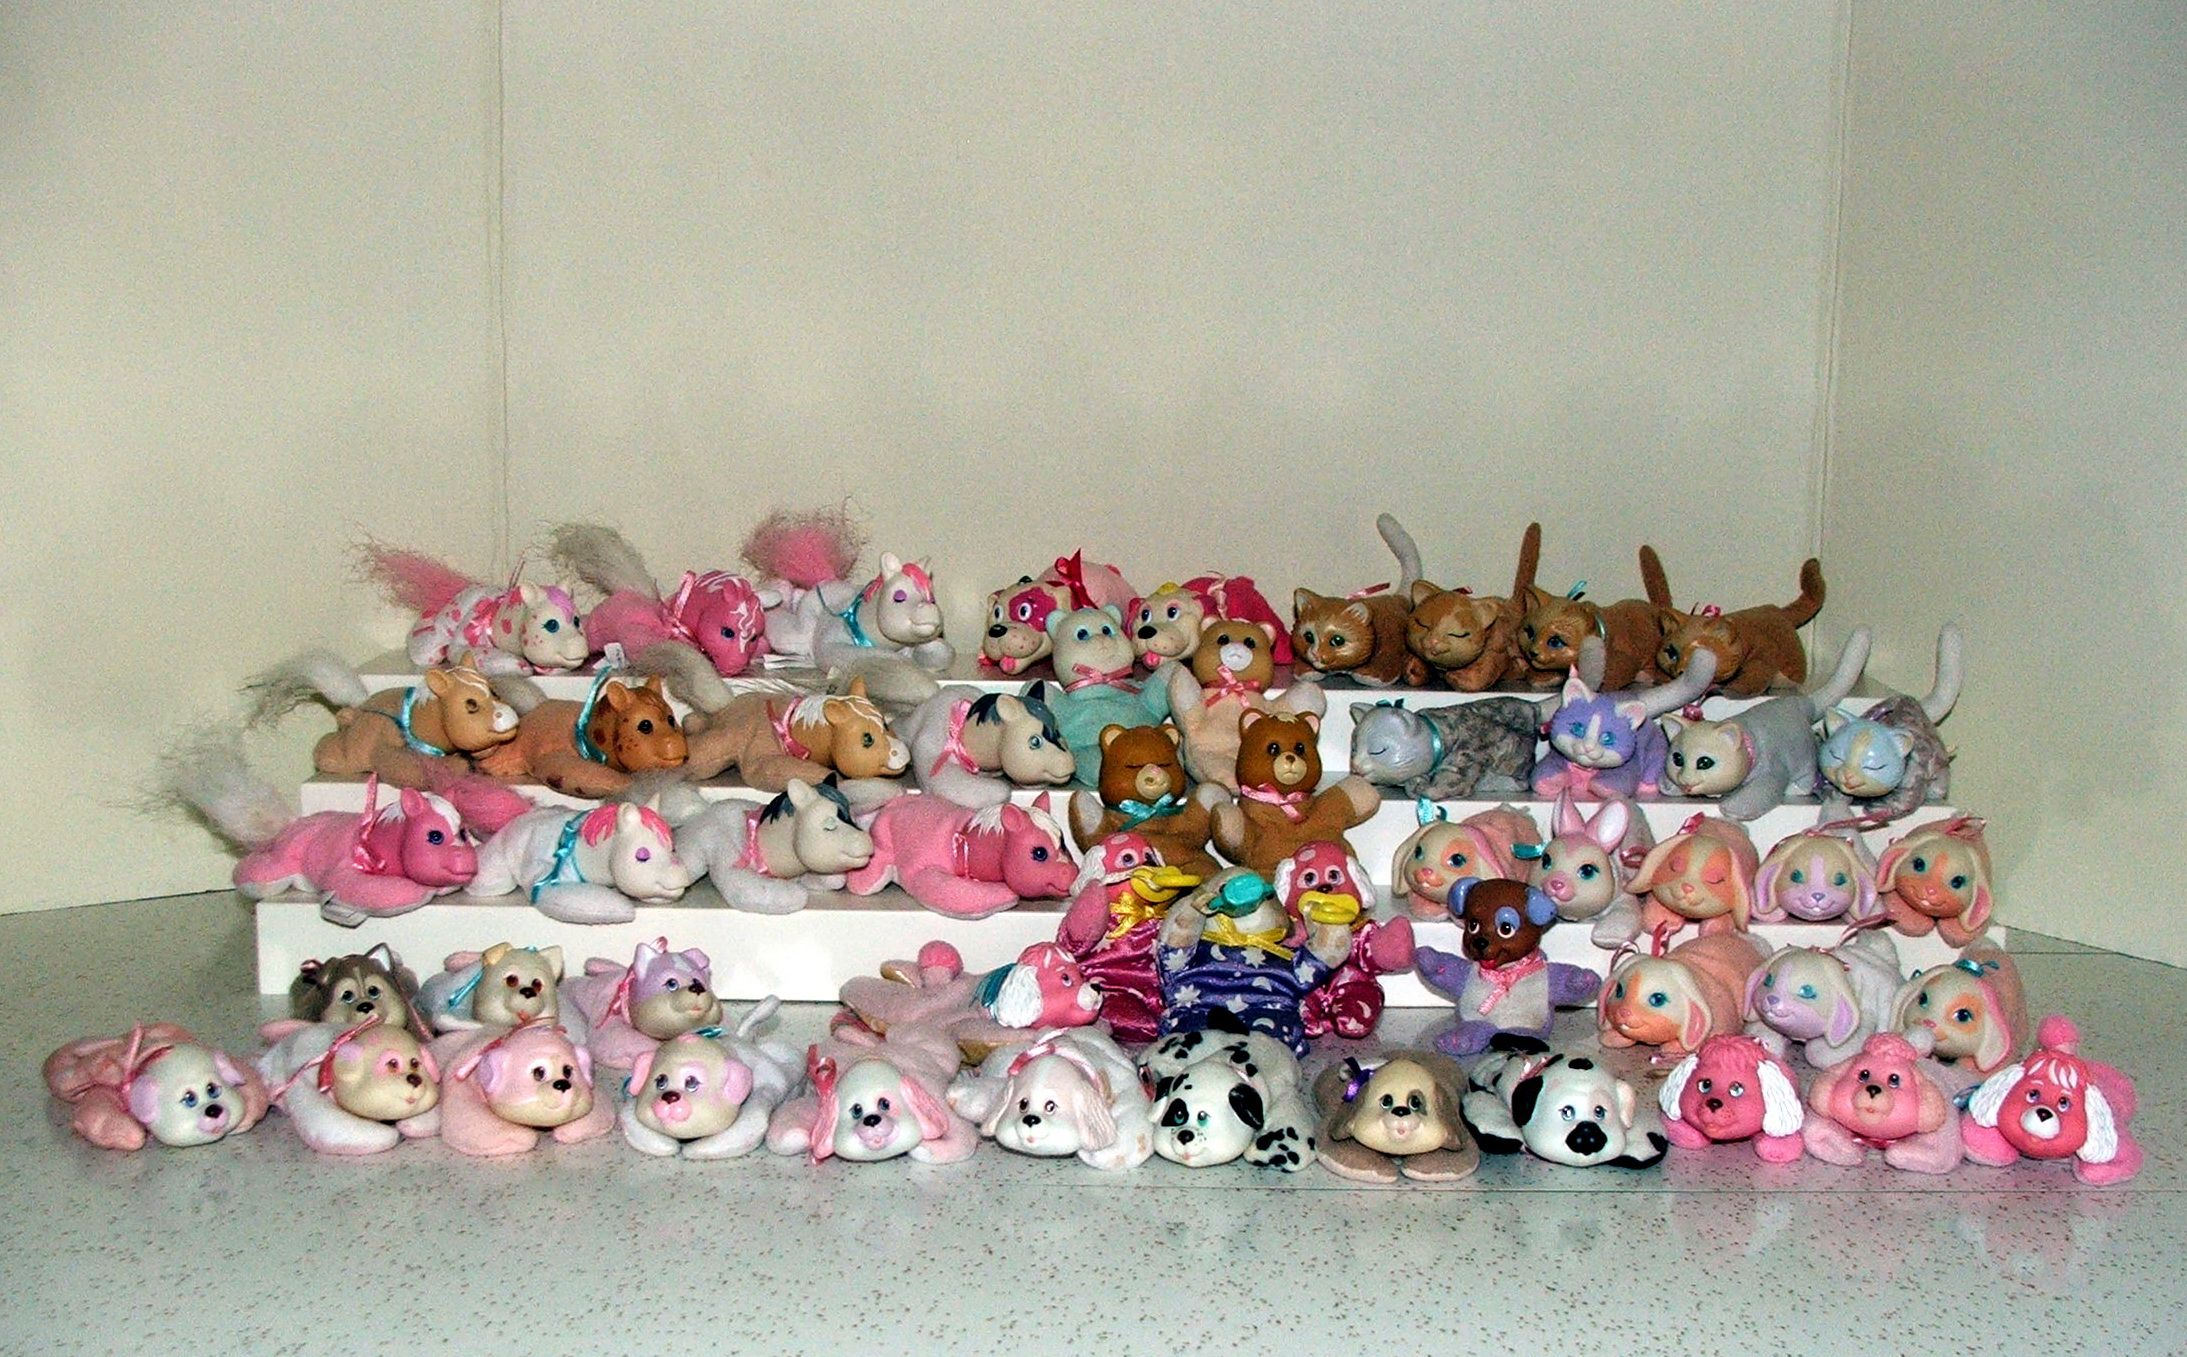 Hasbro Pet Surprise Babies Vintage Hasbro, Hasbro Pet Surprise, Puppy Surprise, Pony Surprise, Kitty Surprise, Bunny Surprise, Baby Cub Surprise, Sleep N Surprise, Group of Babies - Beanbag, Plush, Vinyl Front View, shows face details well, there are two other views on this board